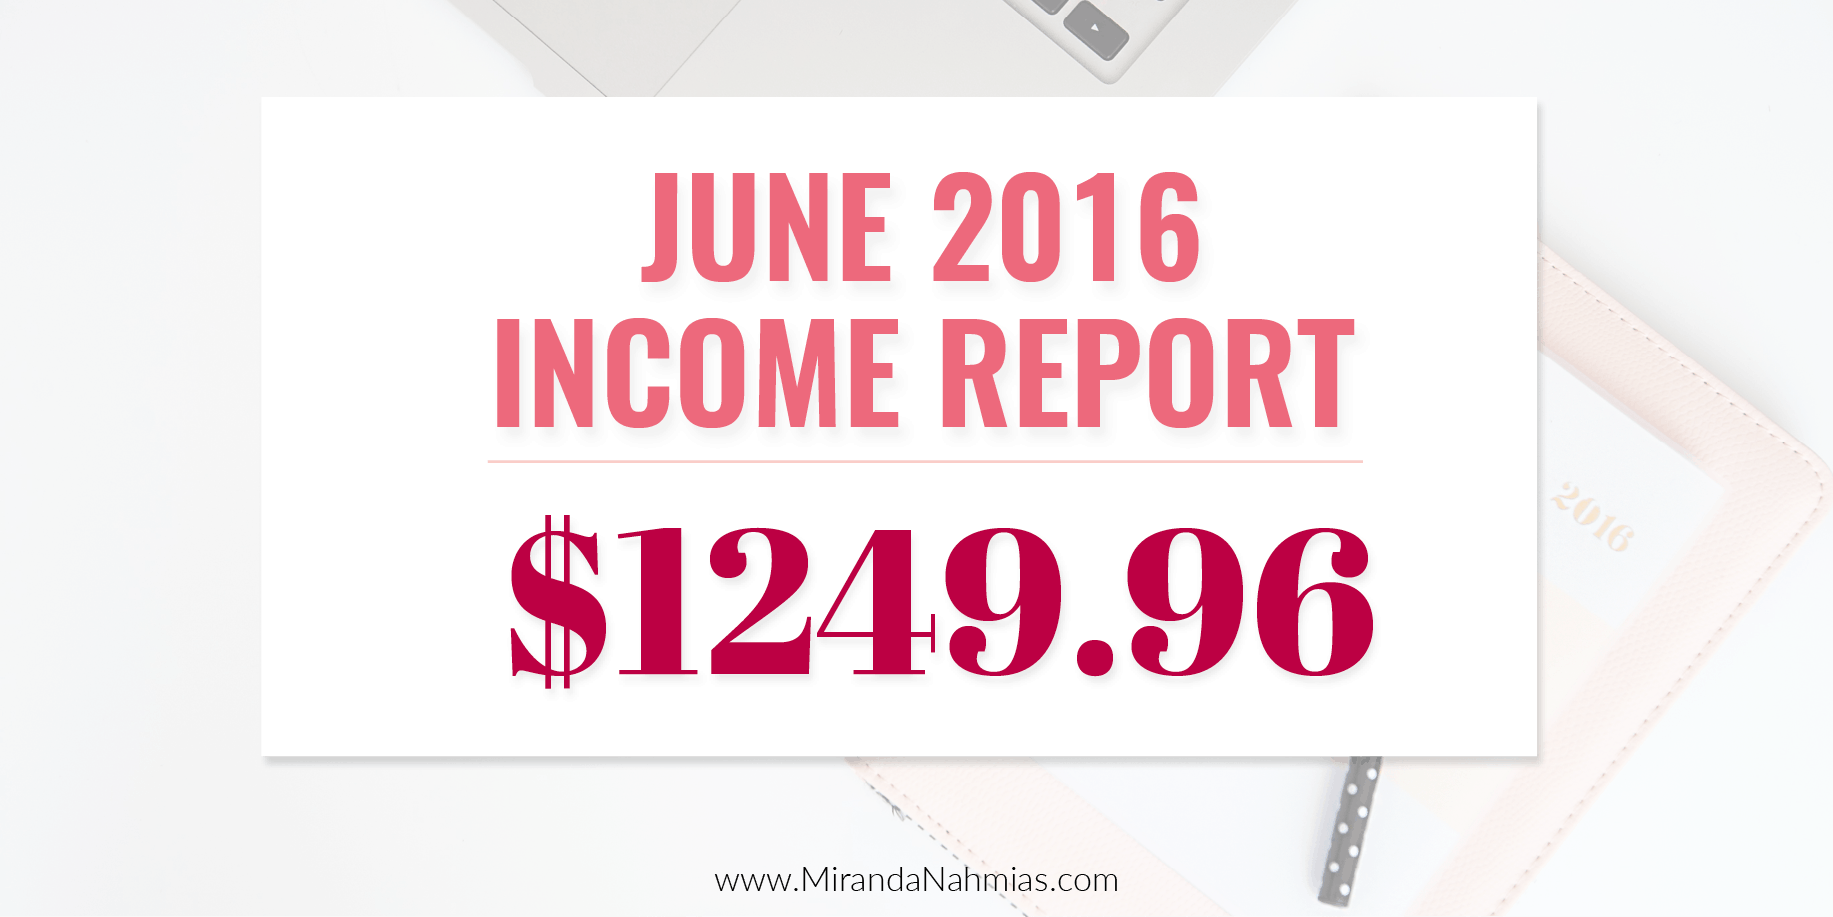 June 2016 Income Report Twitter